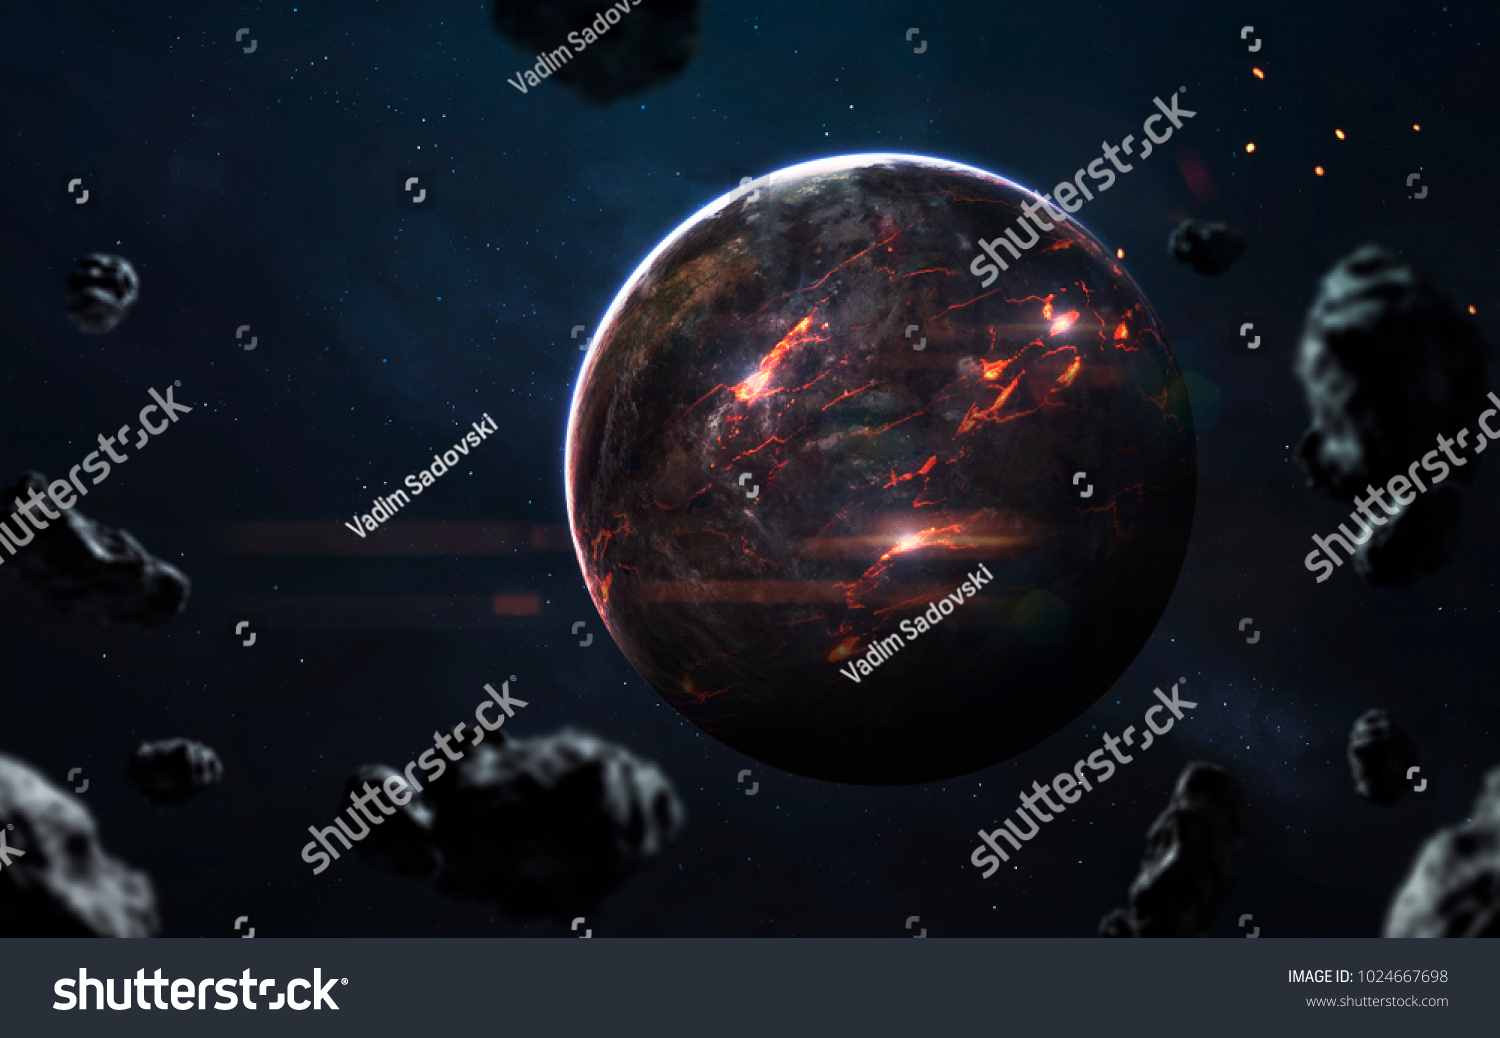 molten planet beautiful science fiction wallpaper stock photo (edit